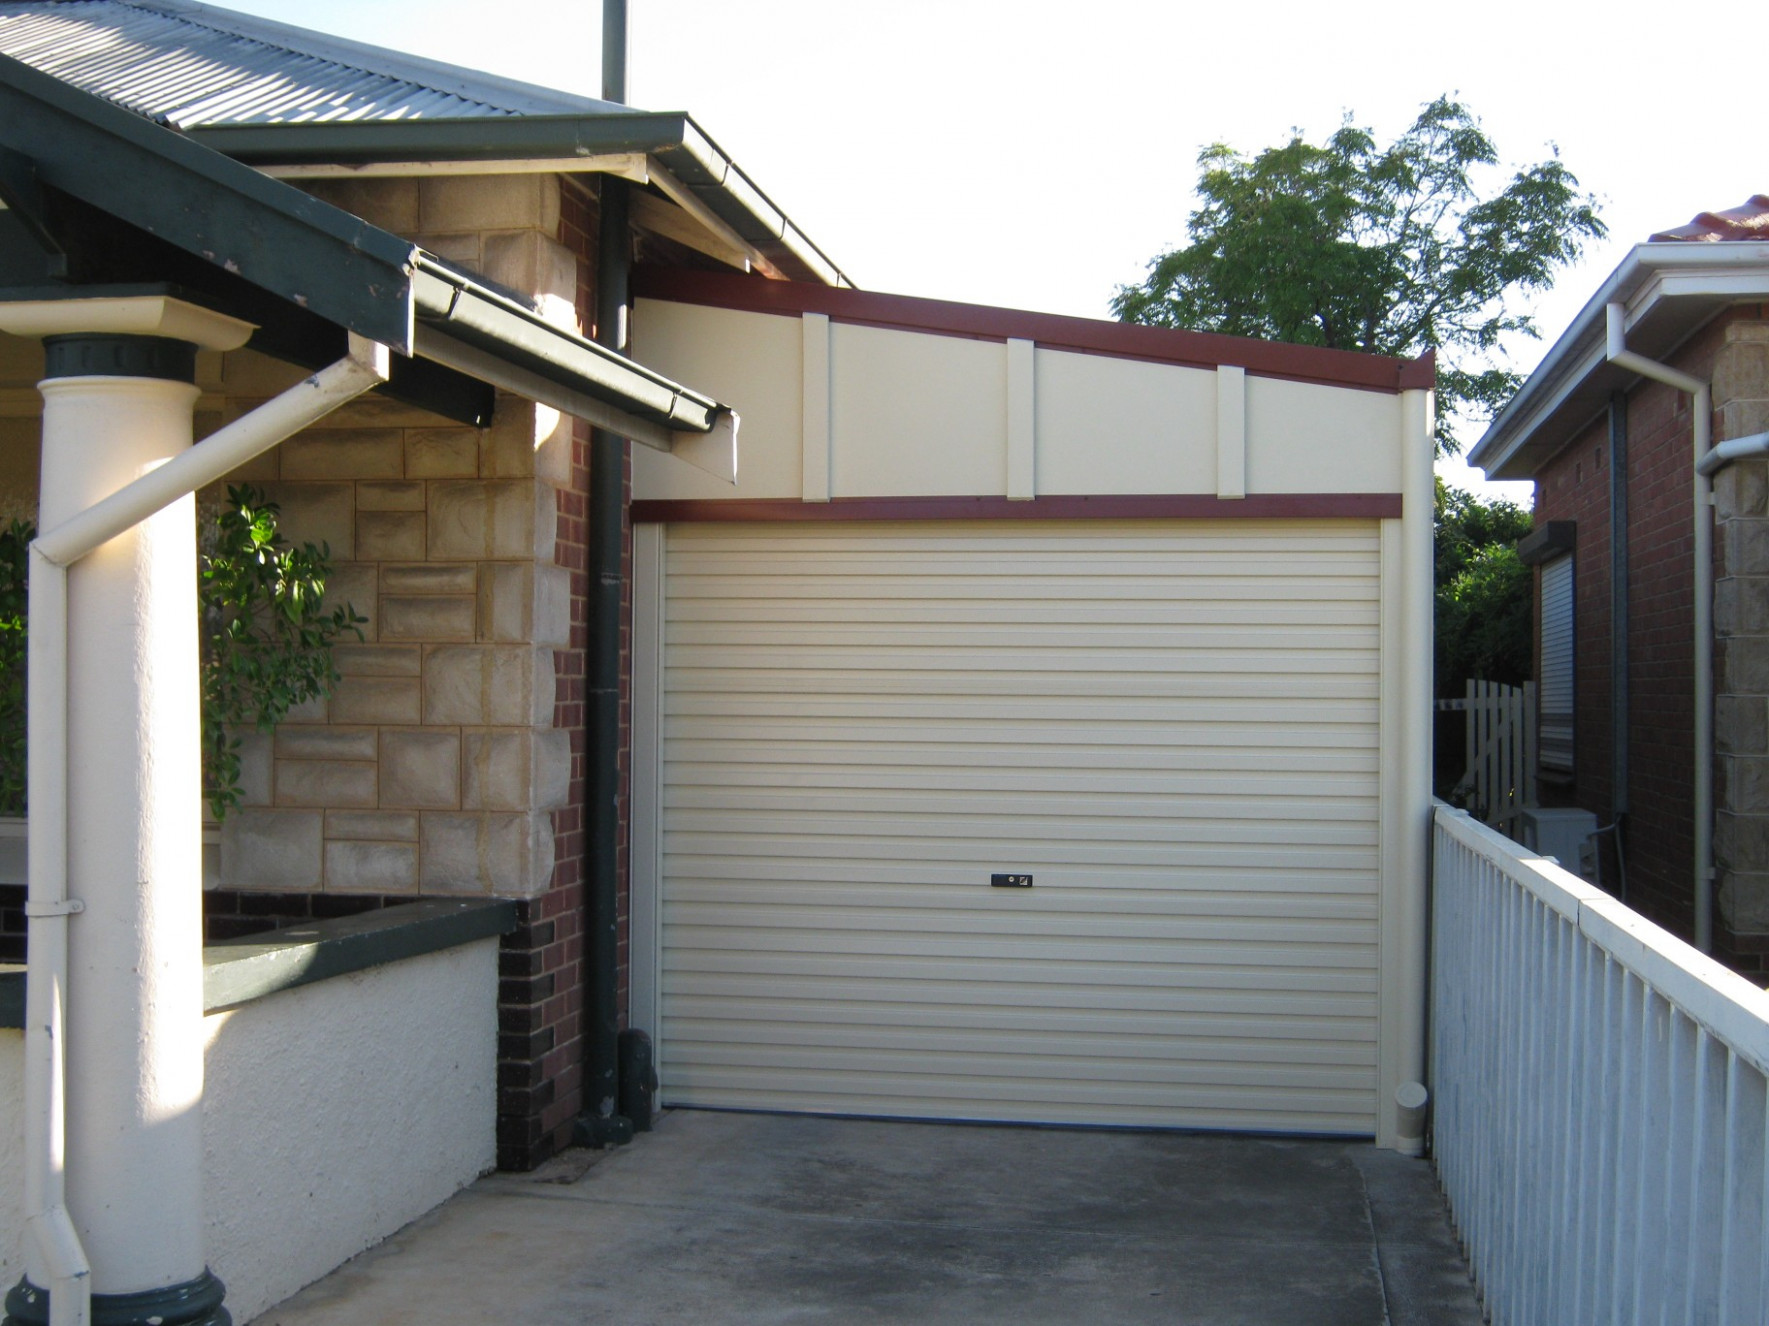 Carport Roller Door Enclosed Carport With Garage Door